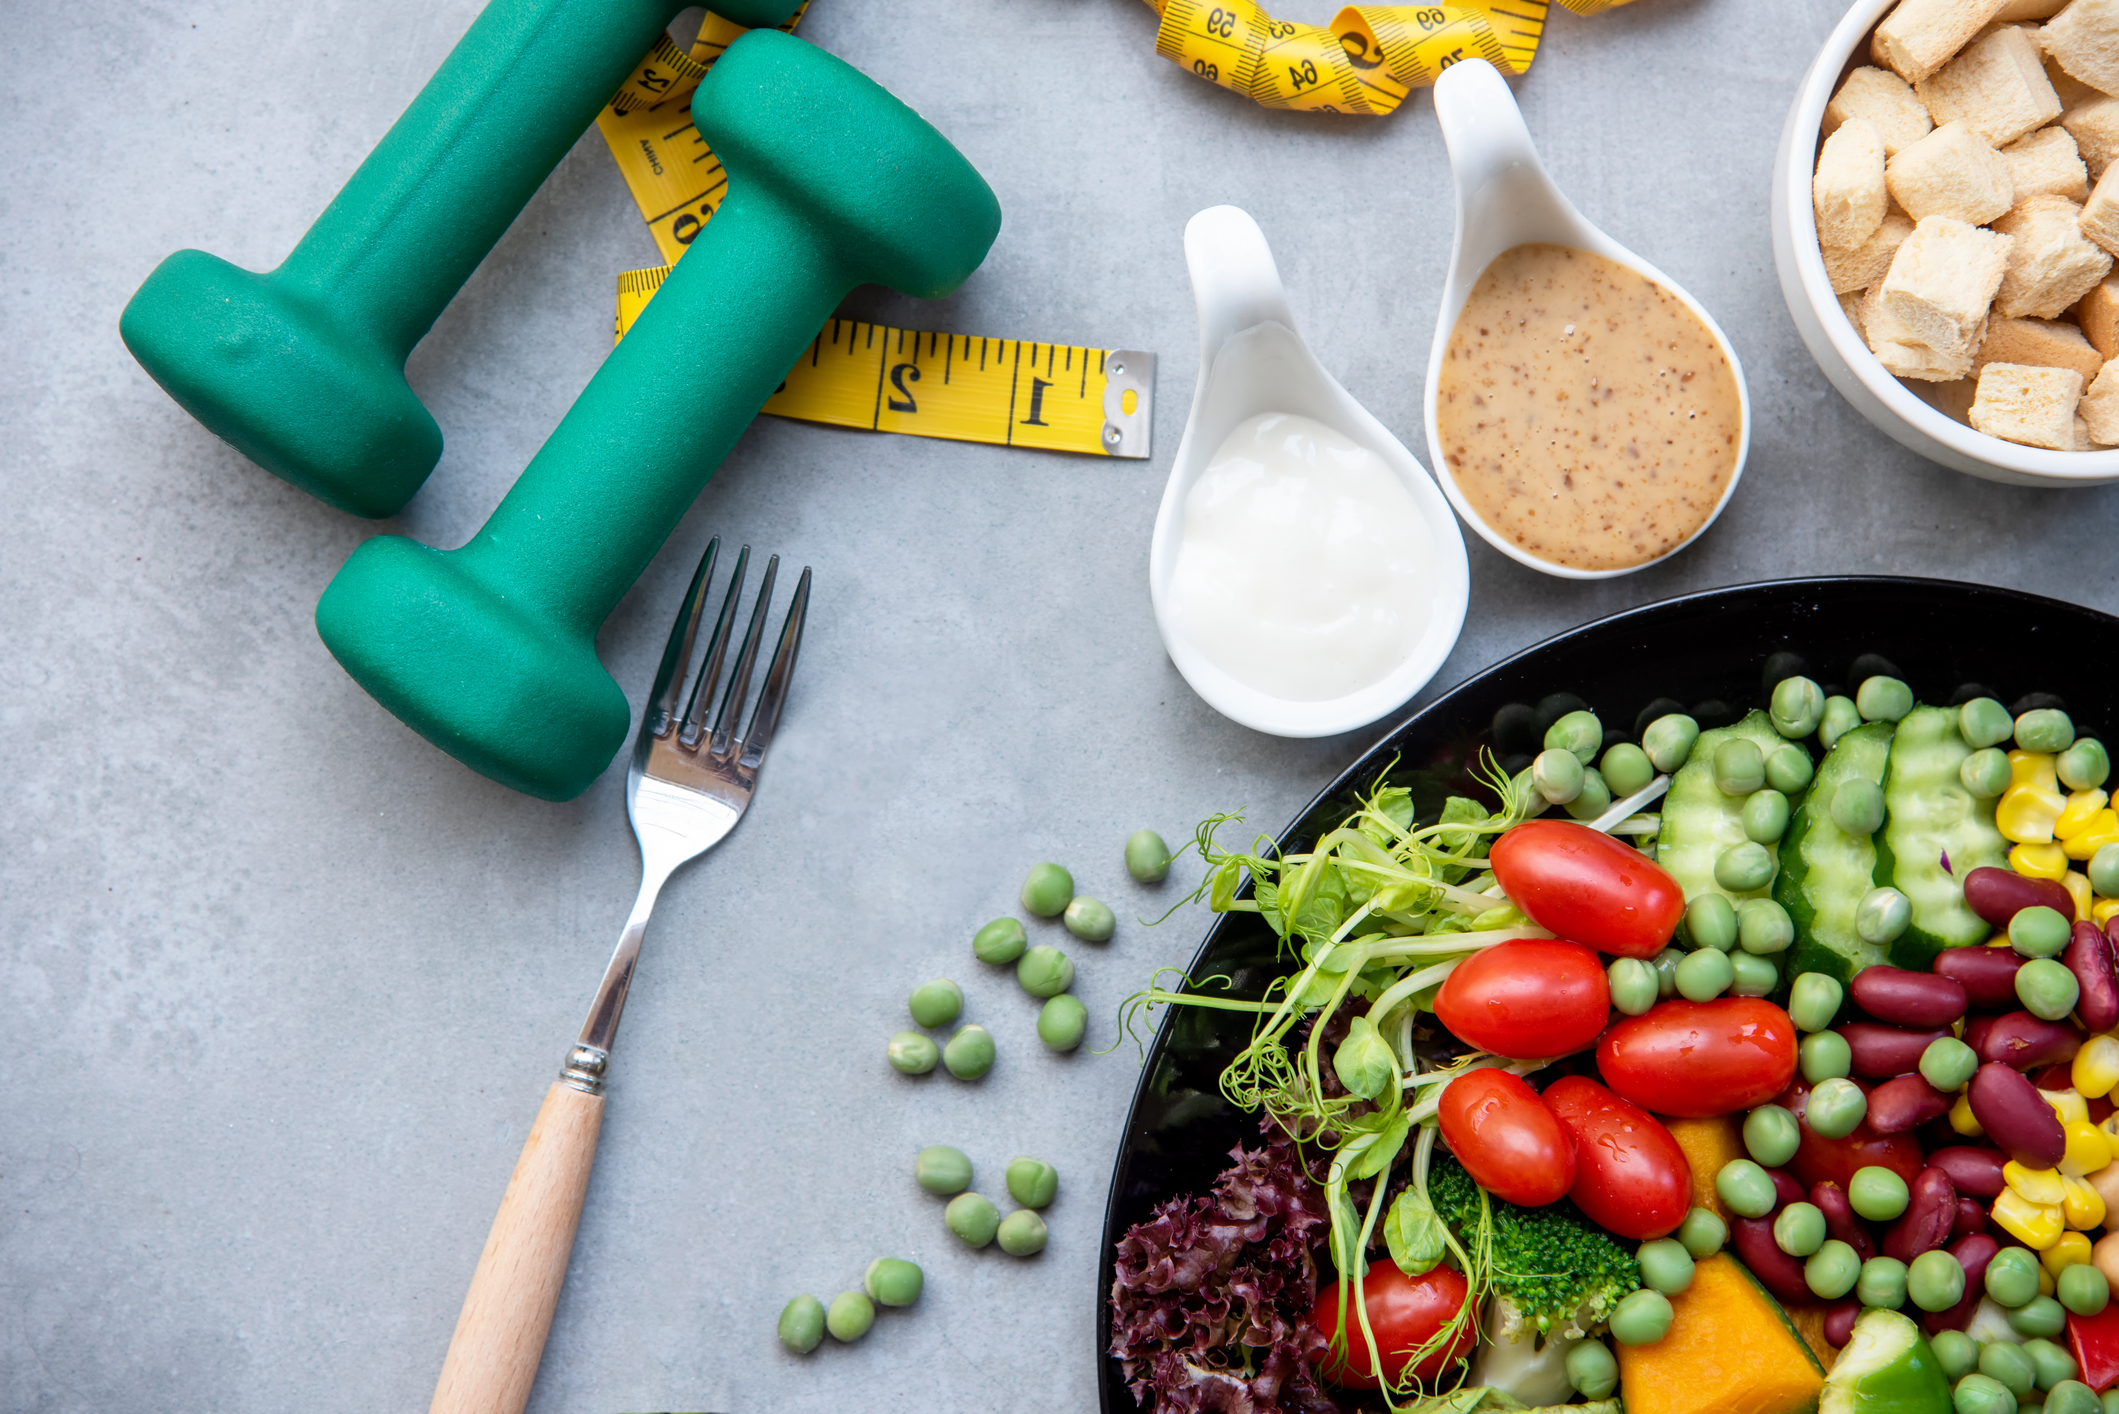 Diet and lifestyle can go a long way to help prevent stroke.